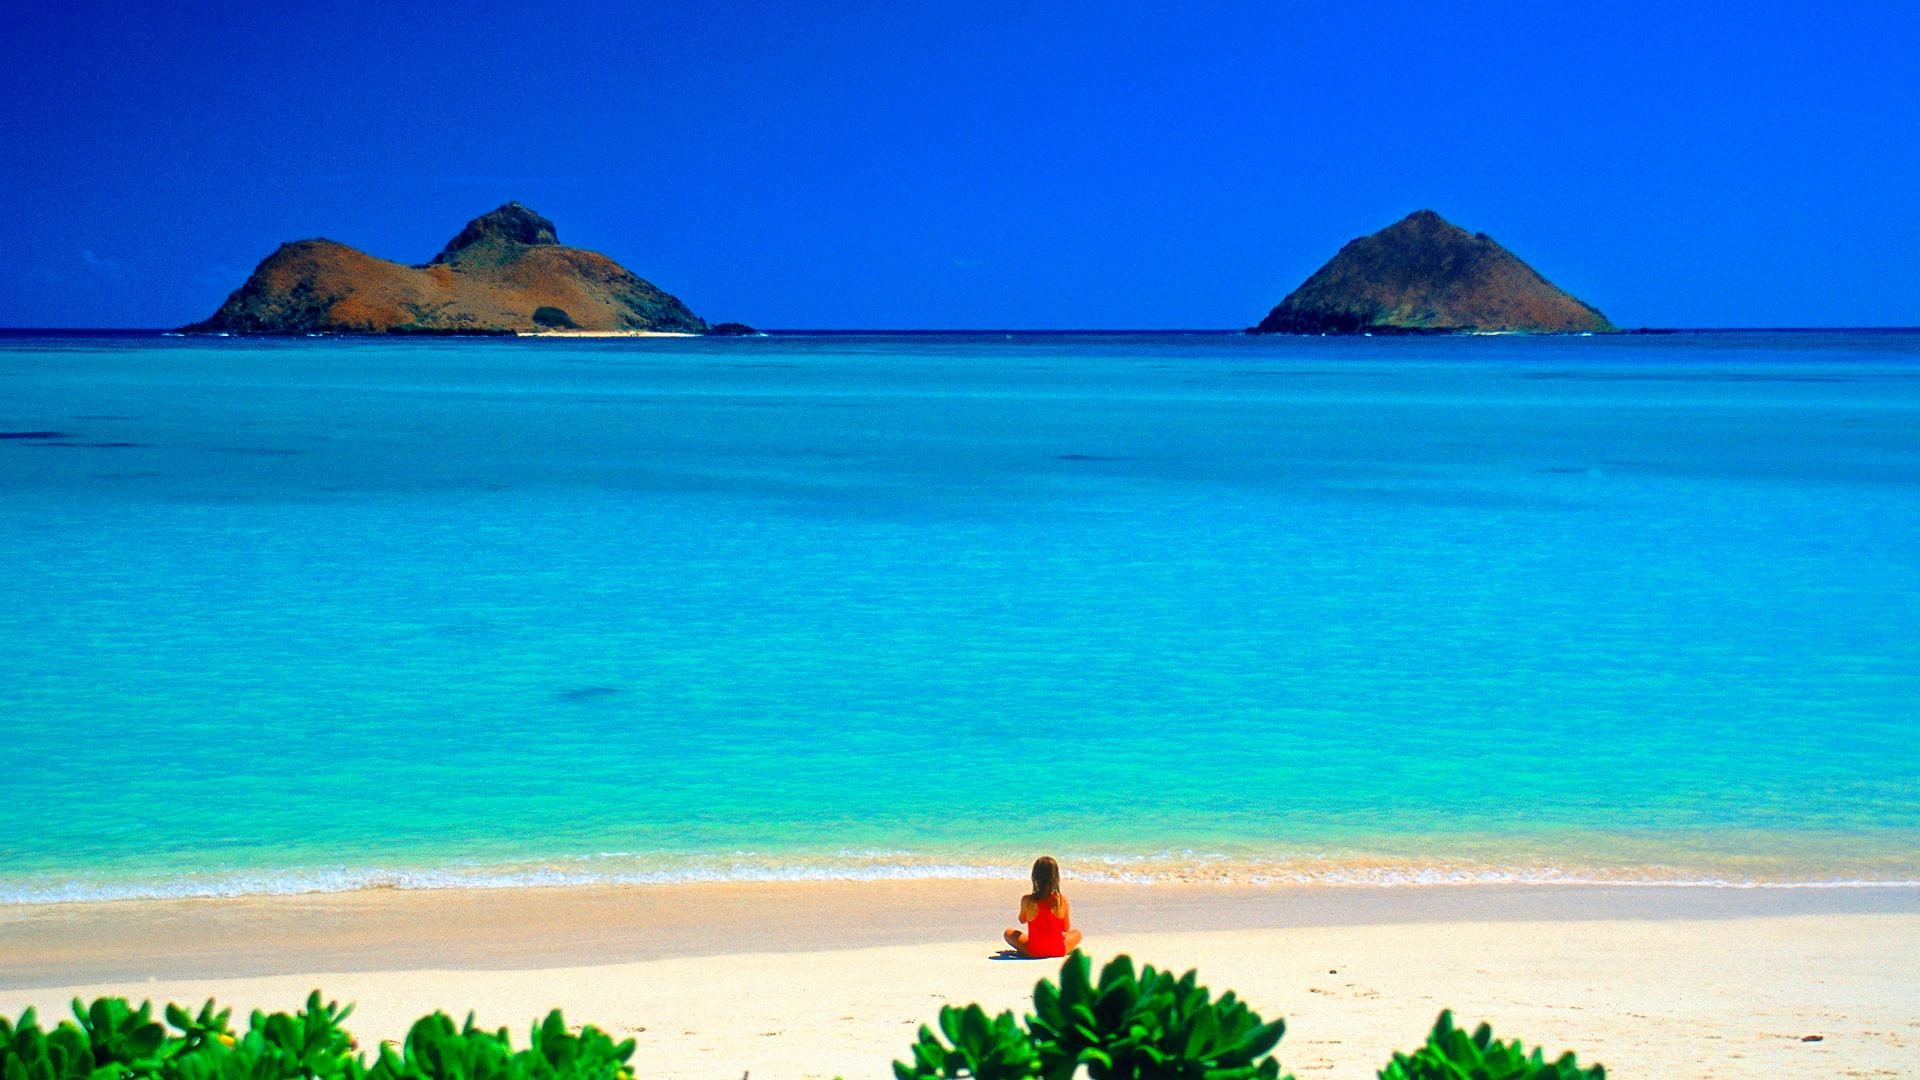 Lanikai Beach Hawaii Hd Wallpaper 1920x1080 Download wallpapers page 1920x1080